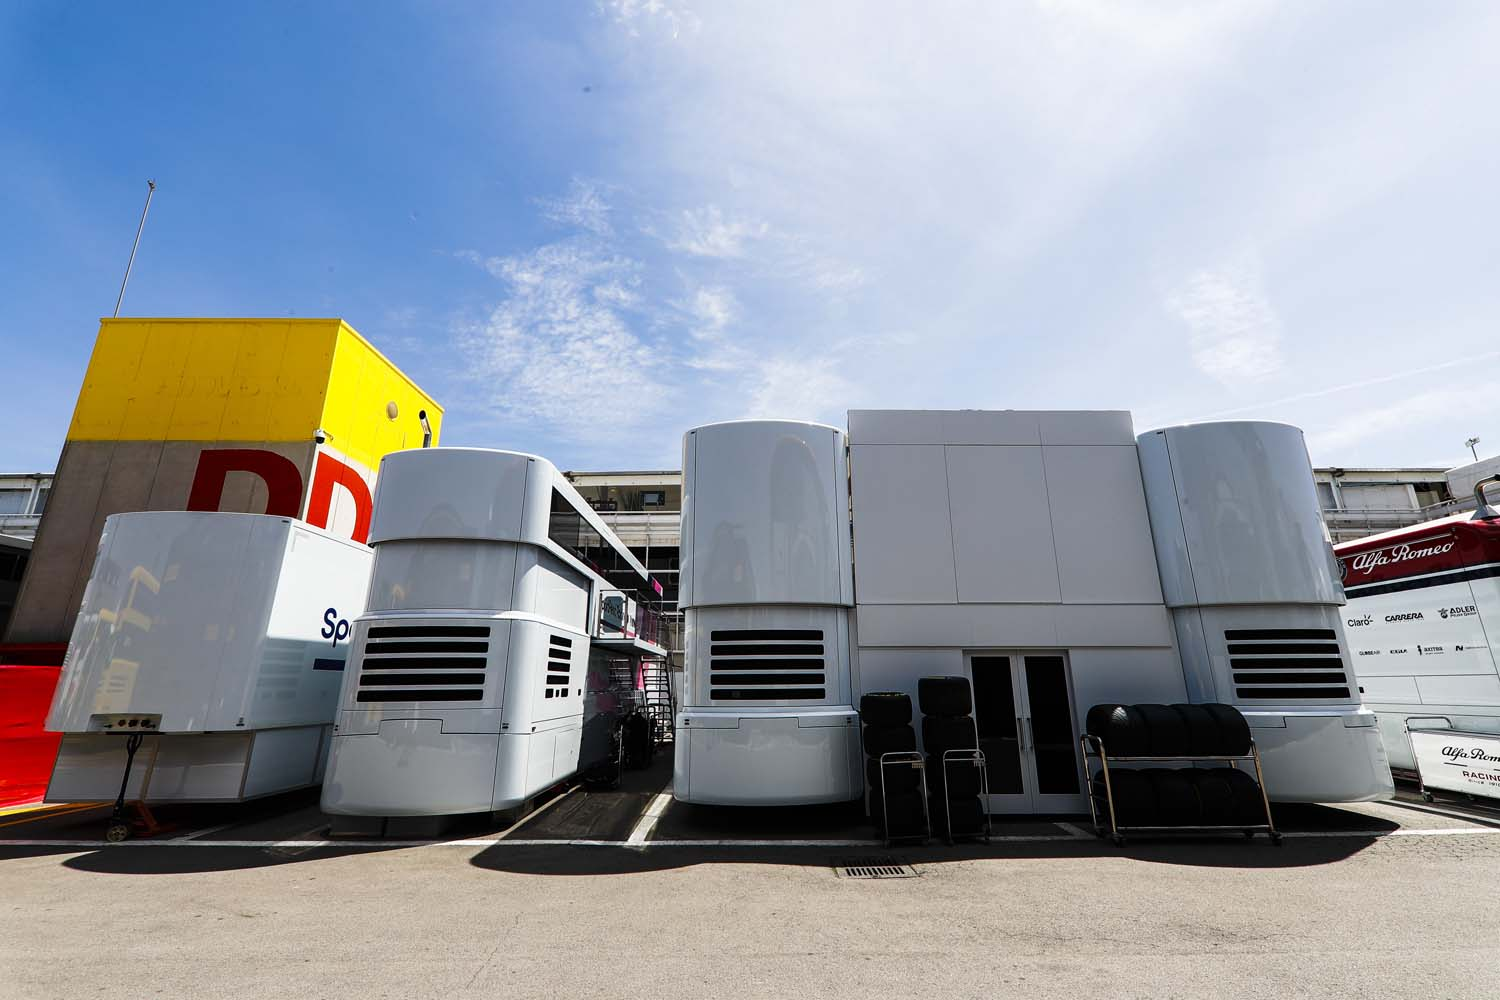 Race transporters / offices in the paddock